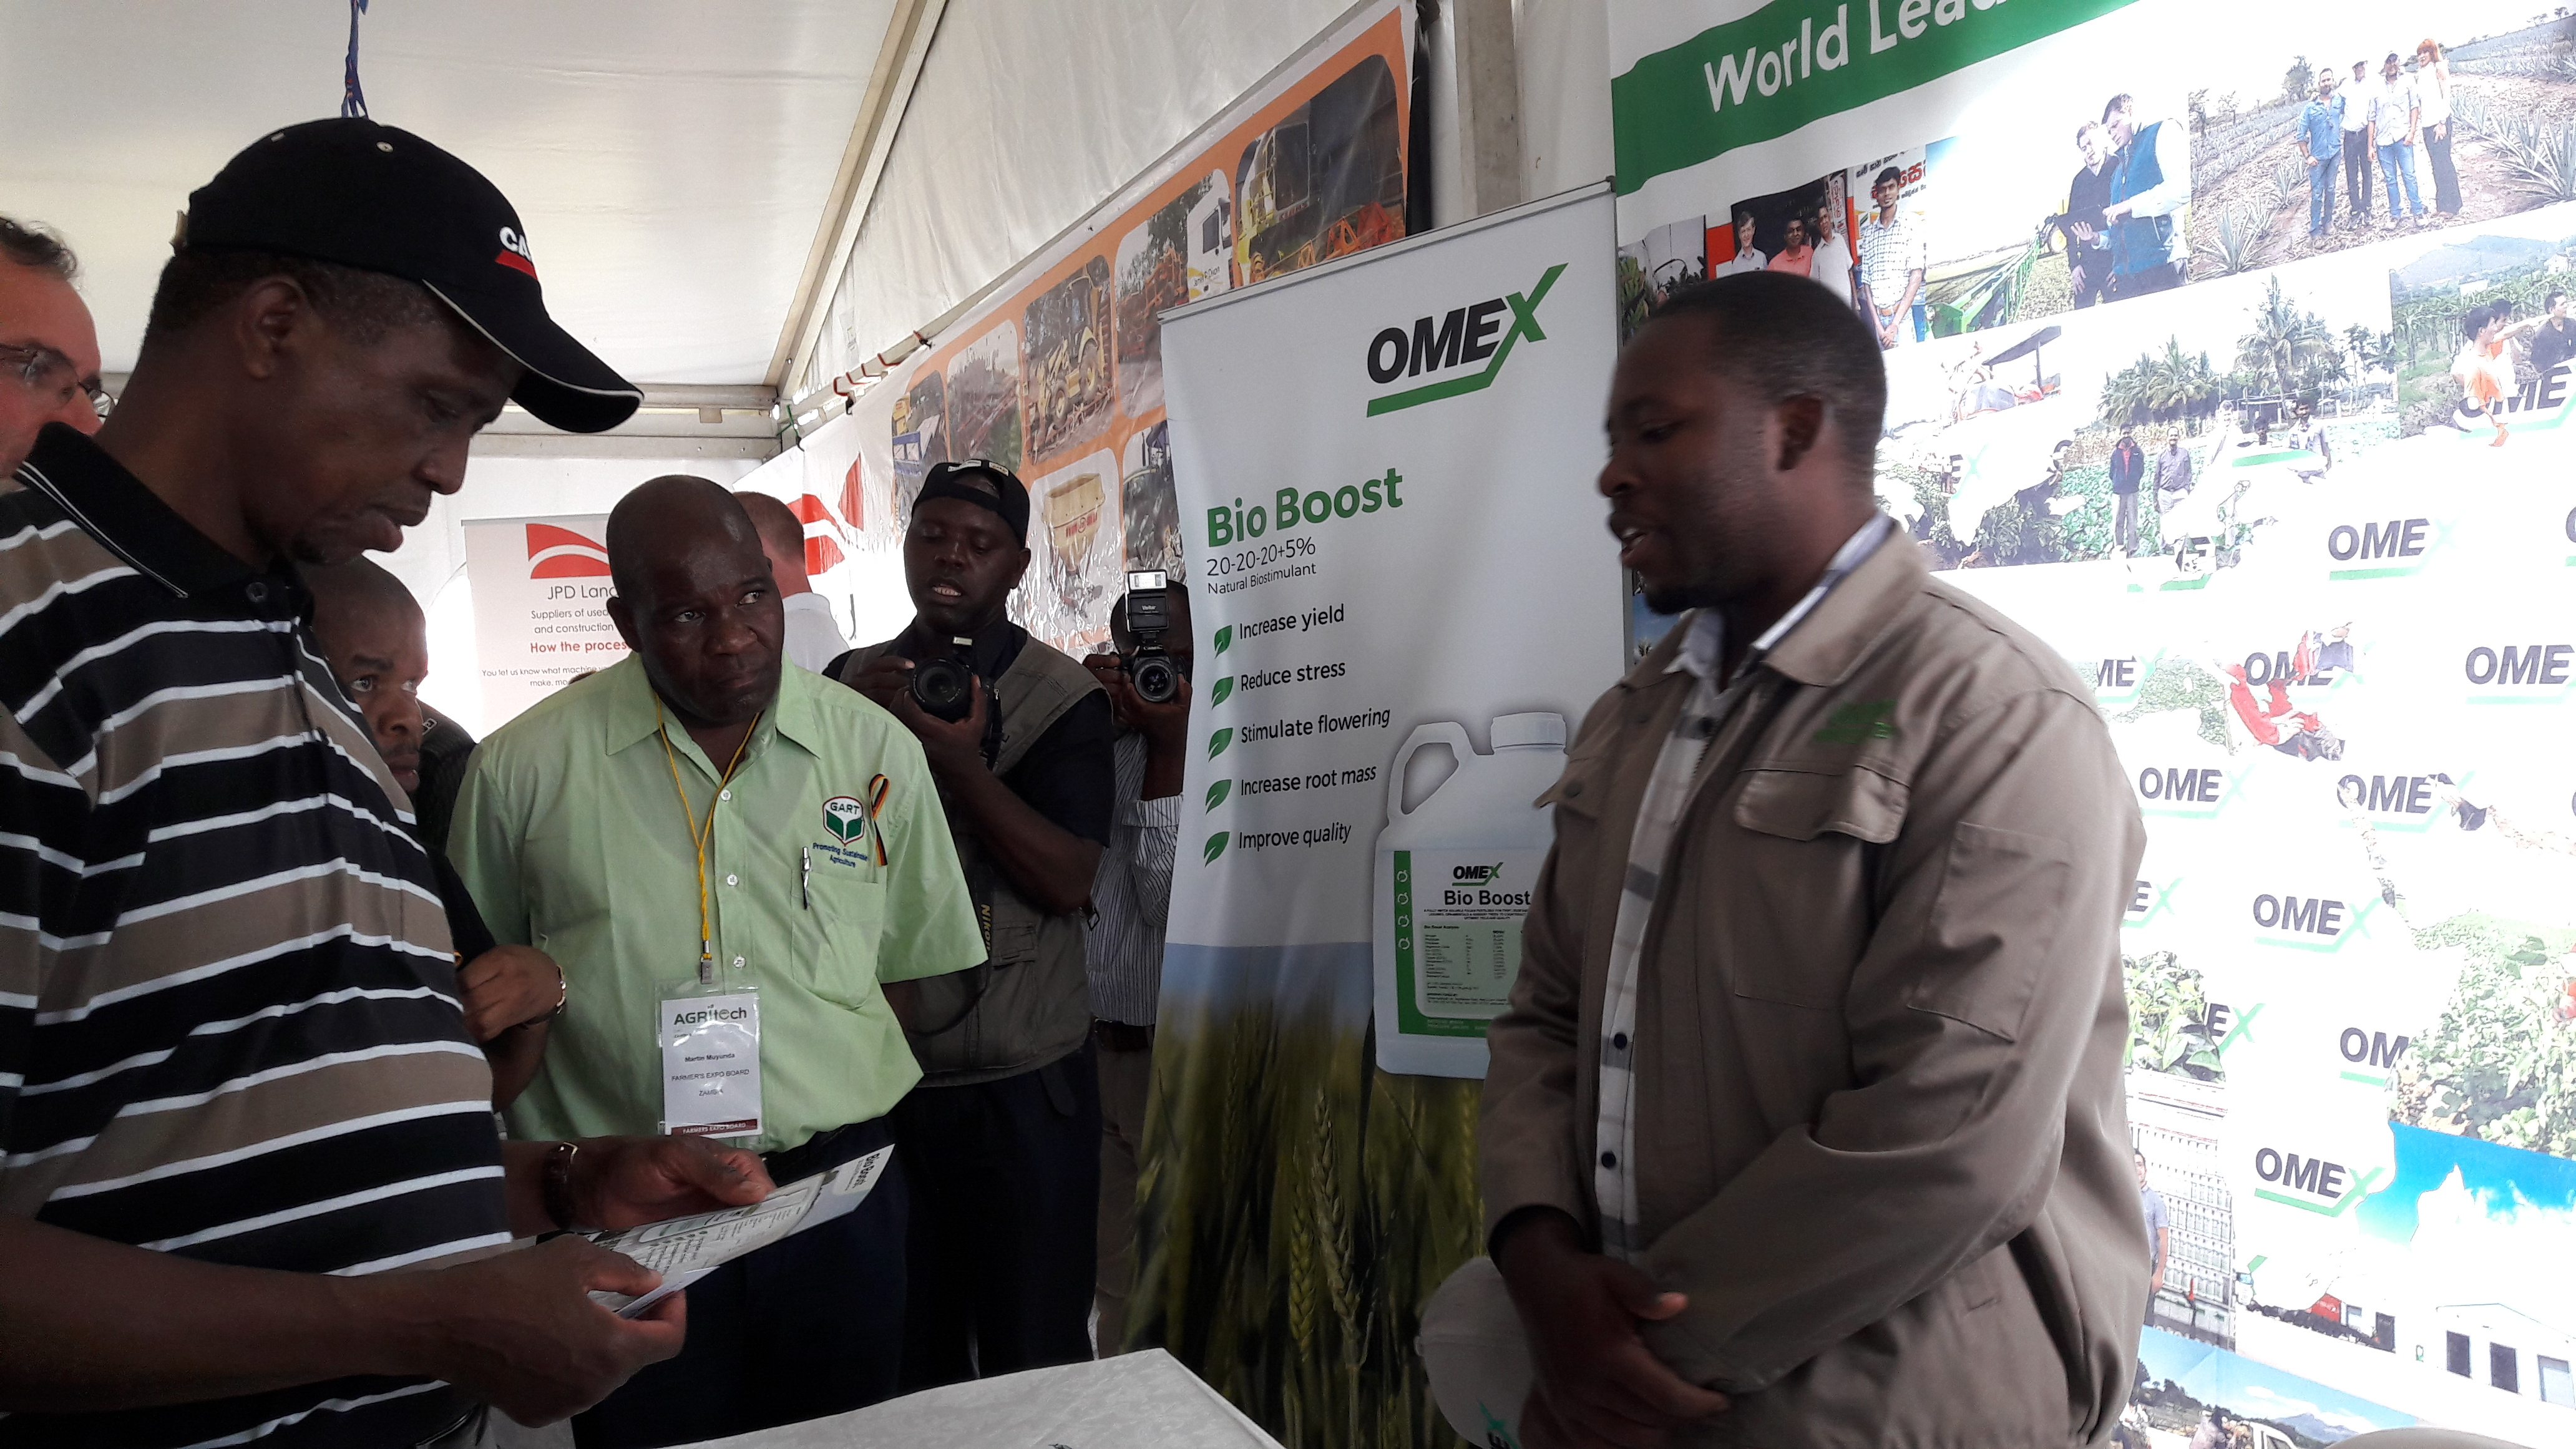 OMEX Meets President of Zambia at Agritech!